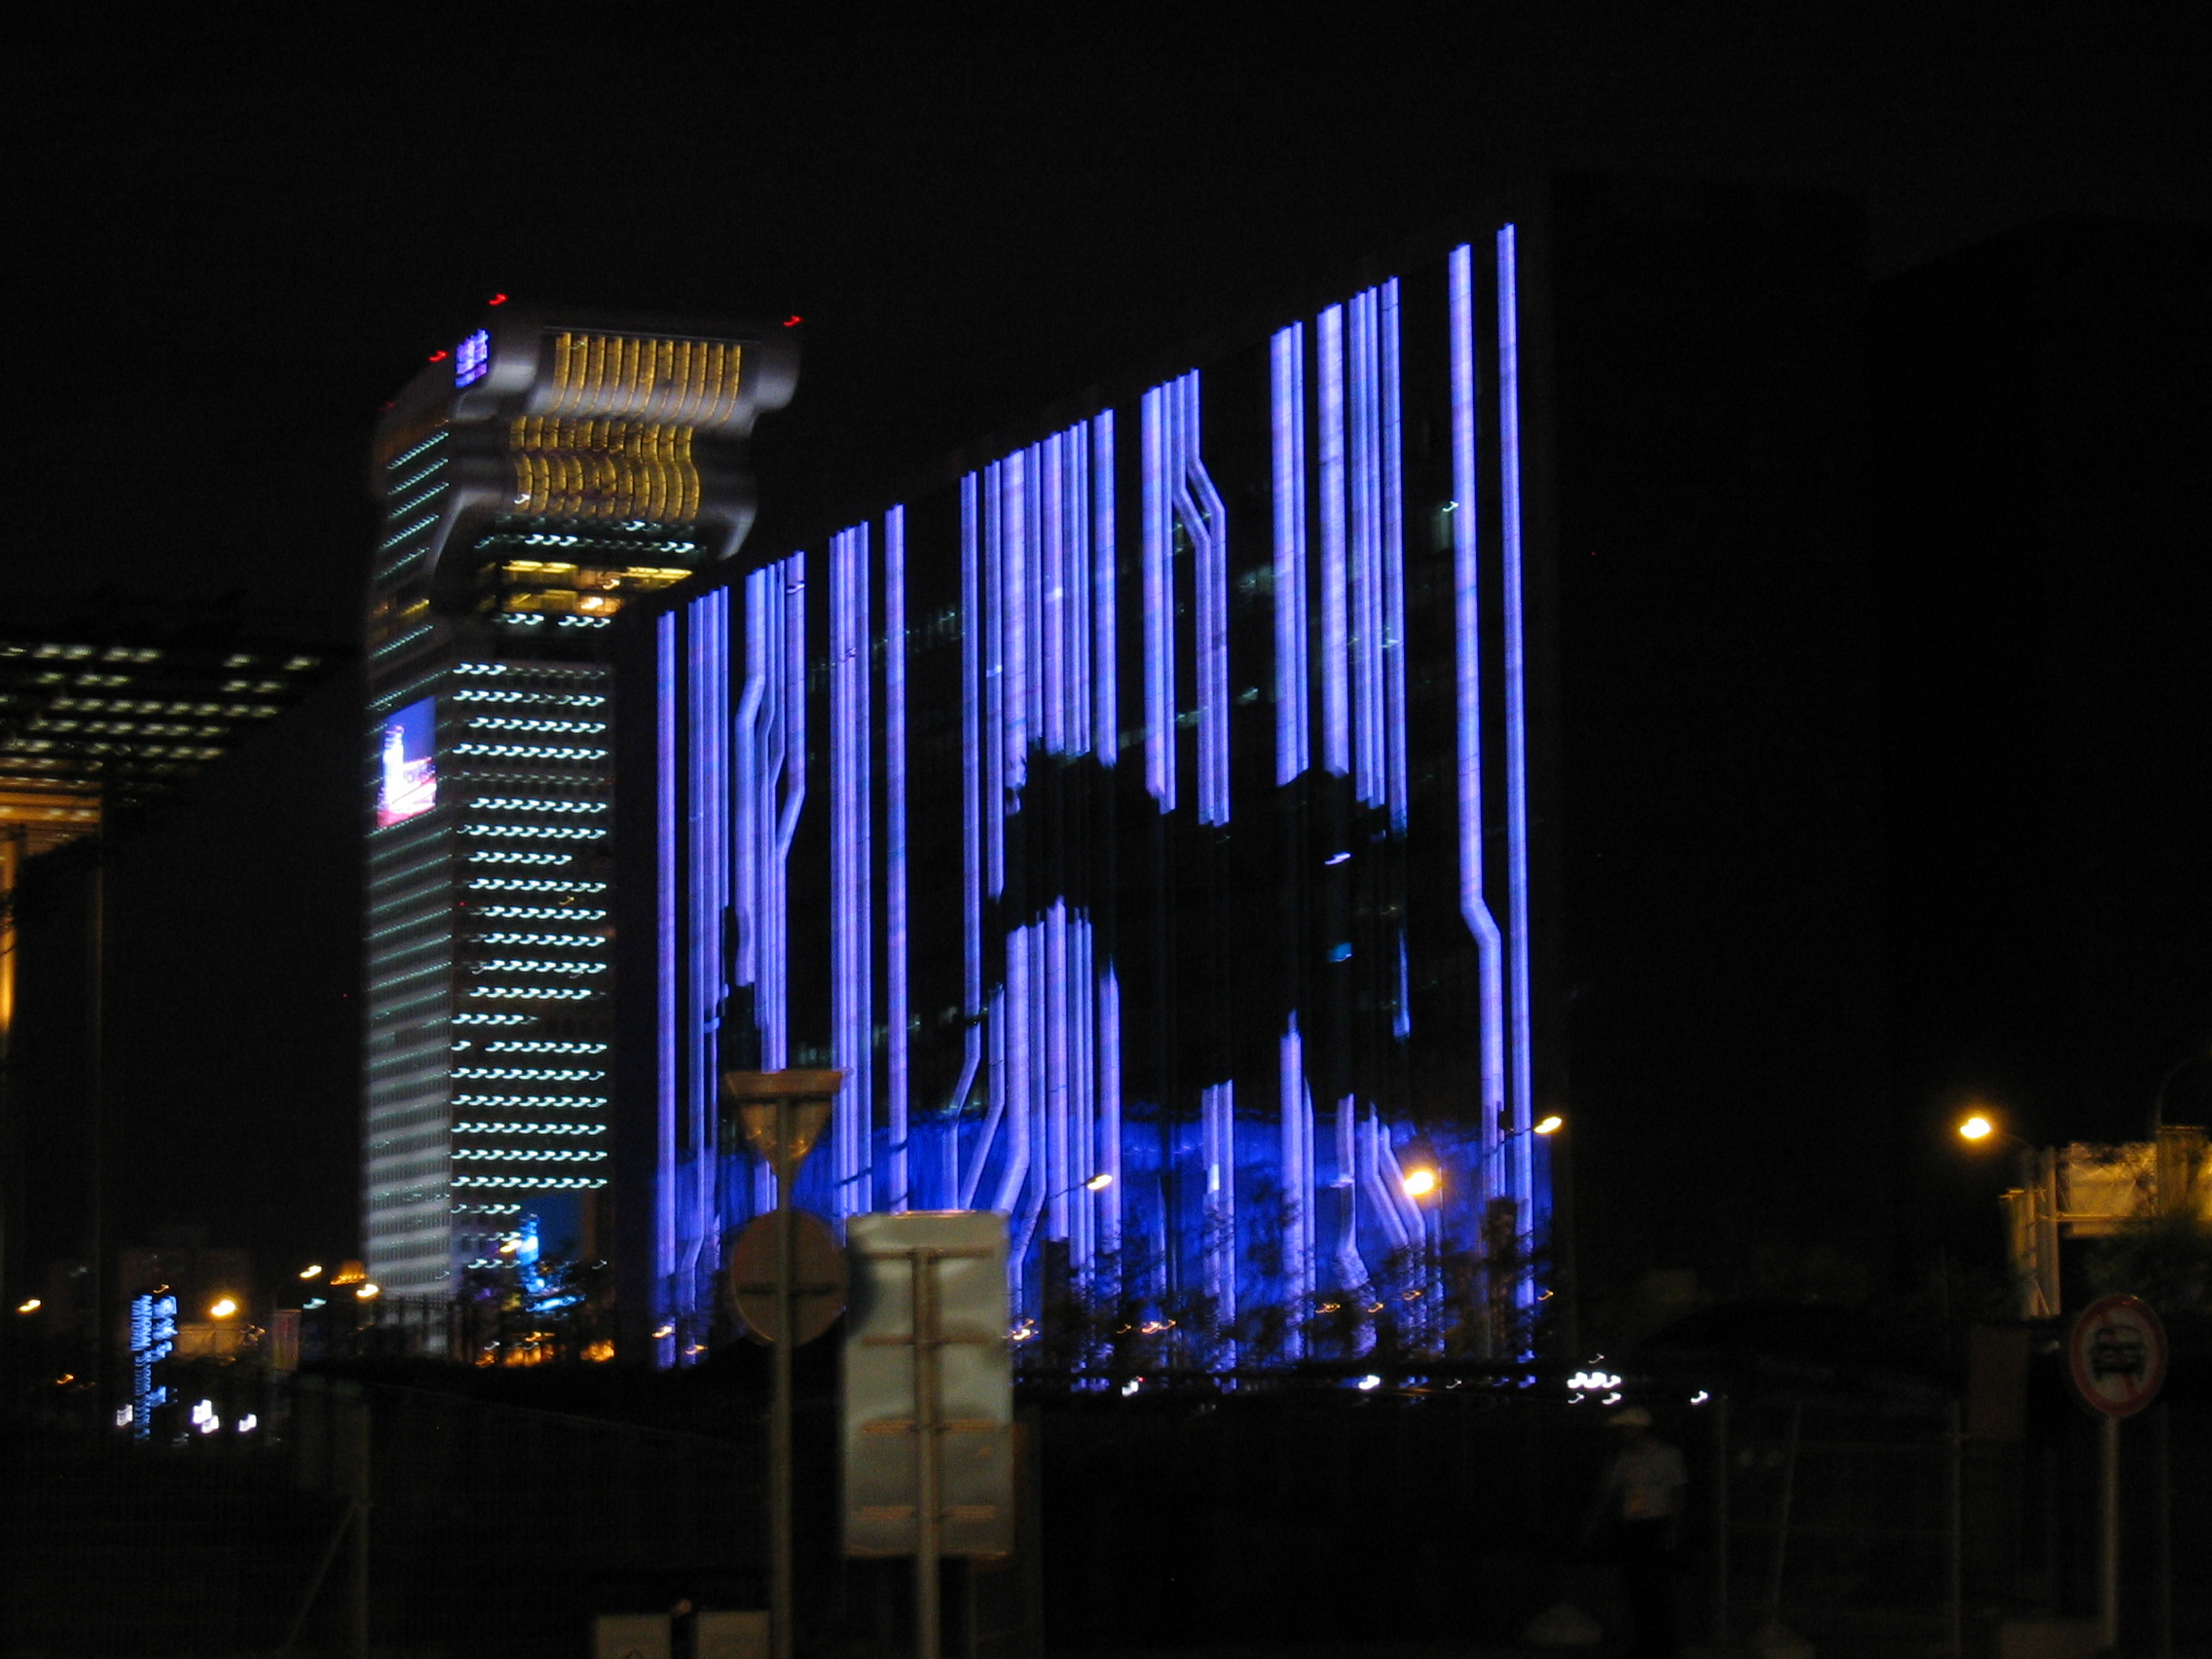 Creepy evil building by day, digital display by night